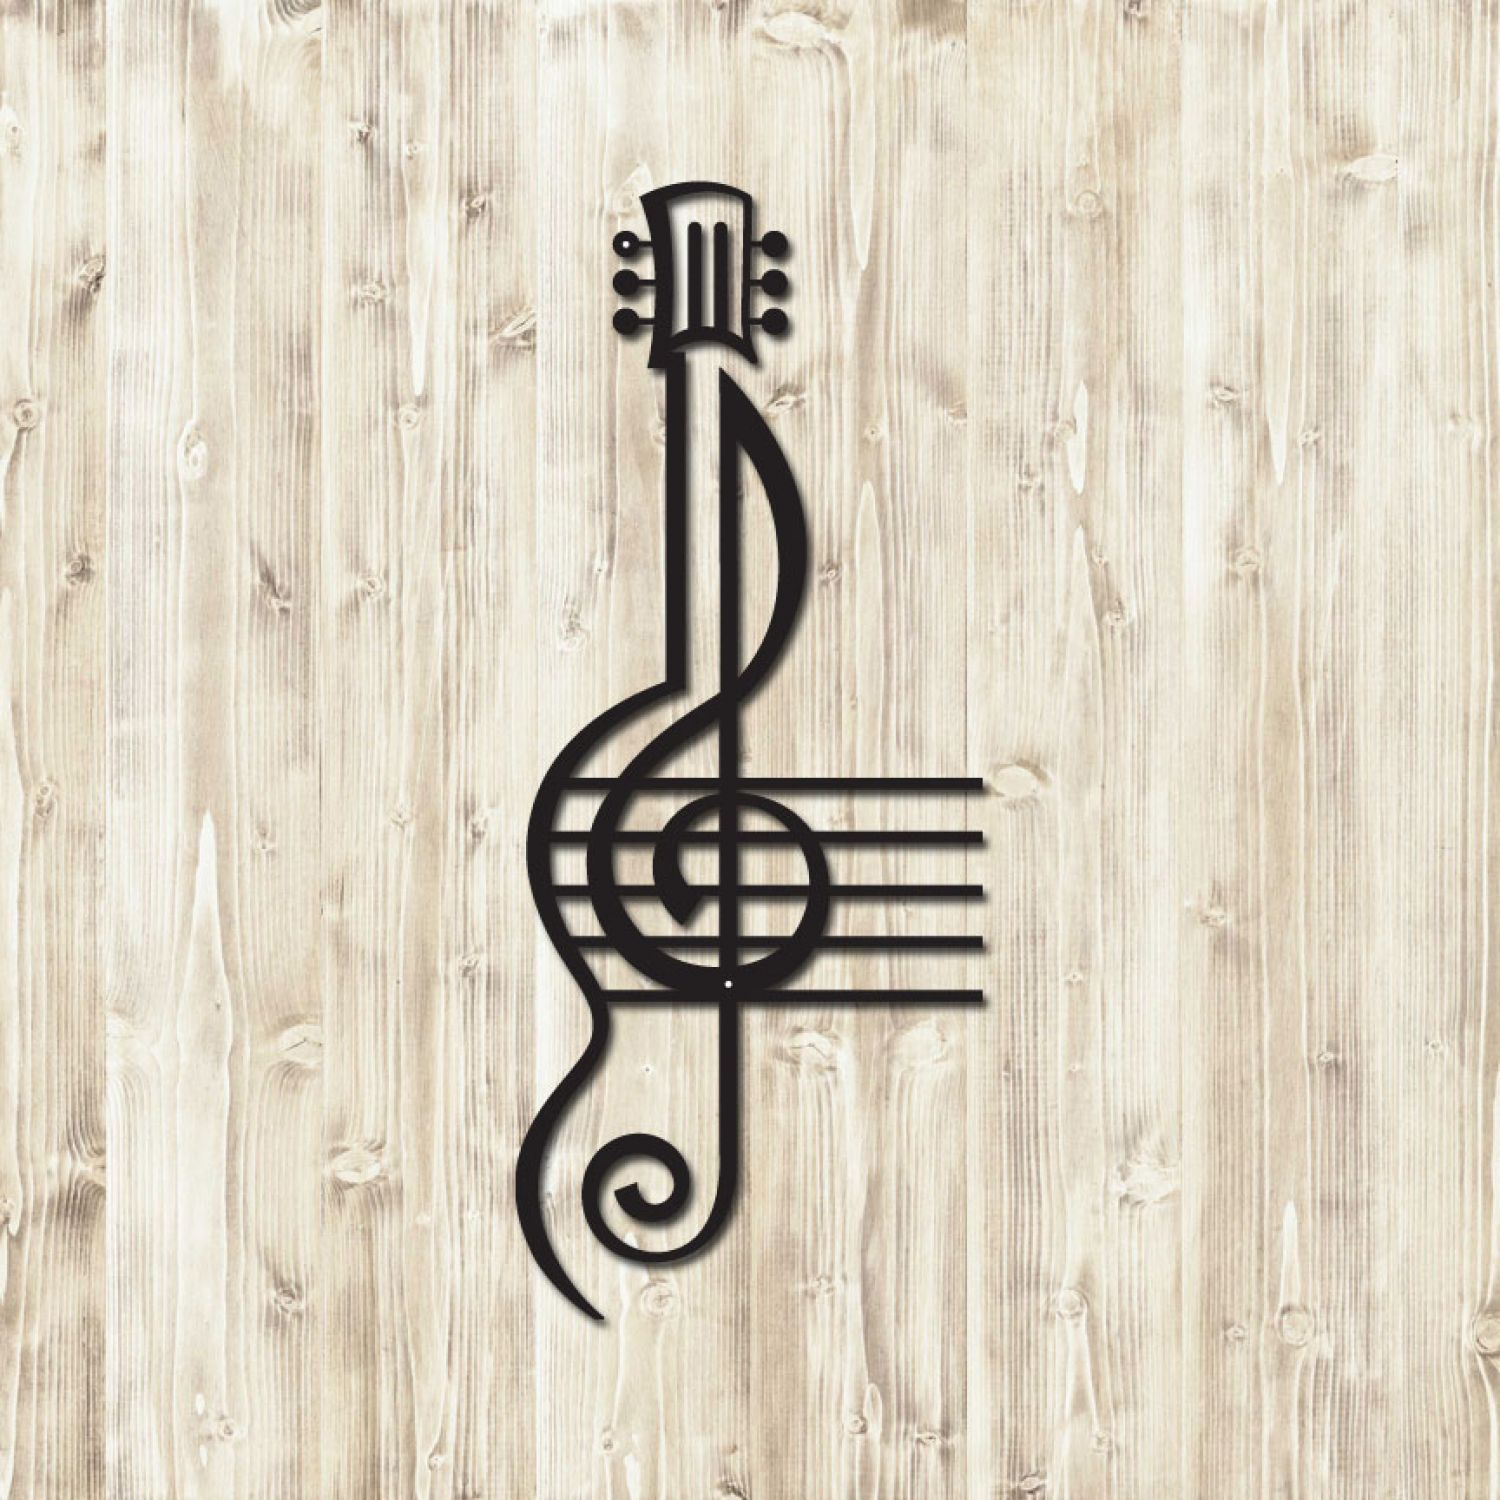 treble clef guitar  miscellaneous home decor